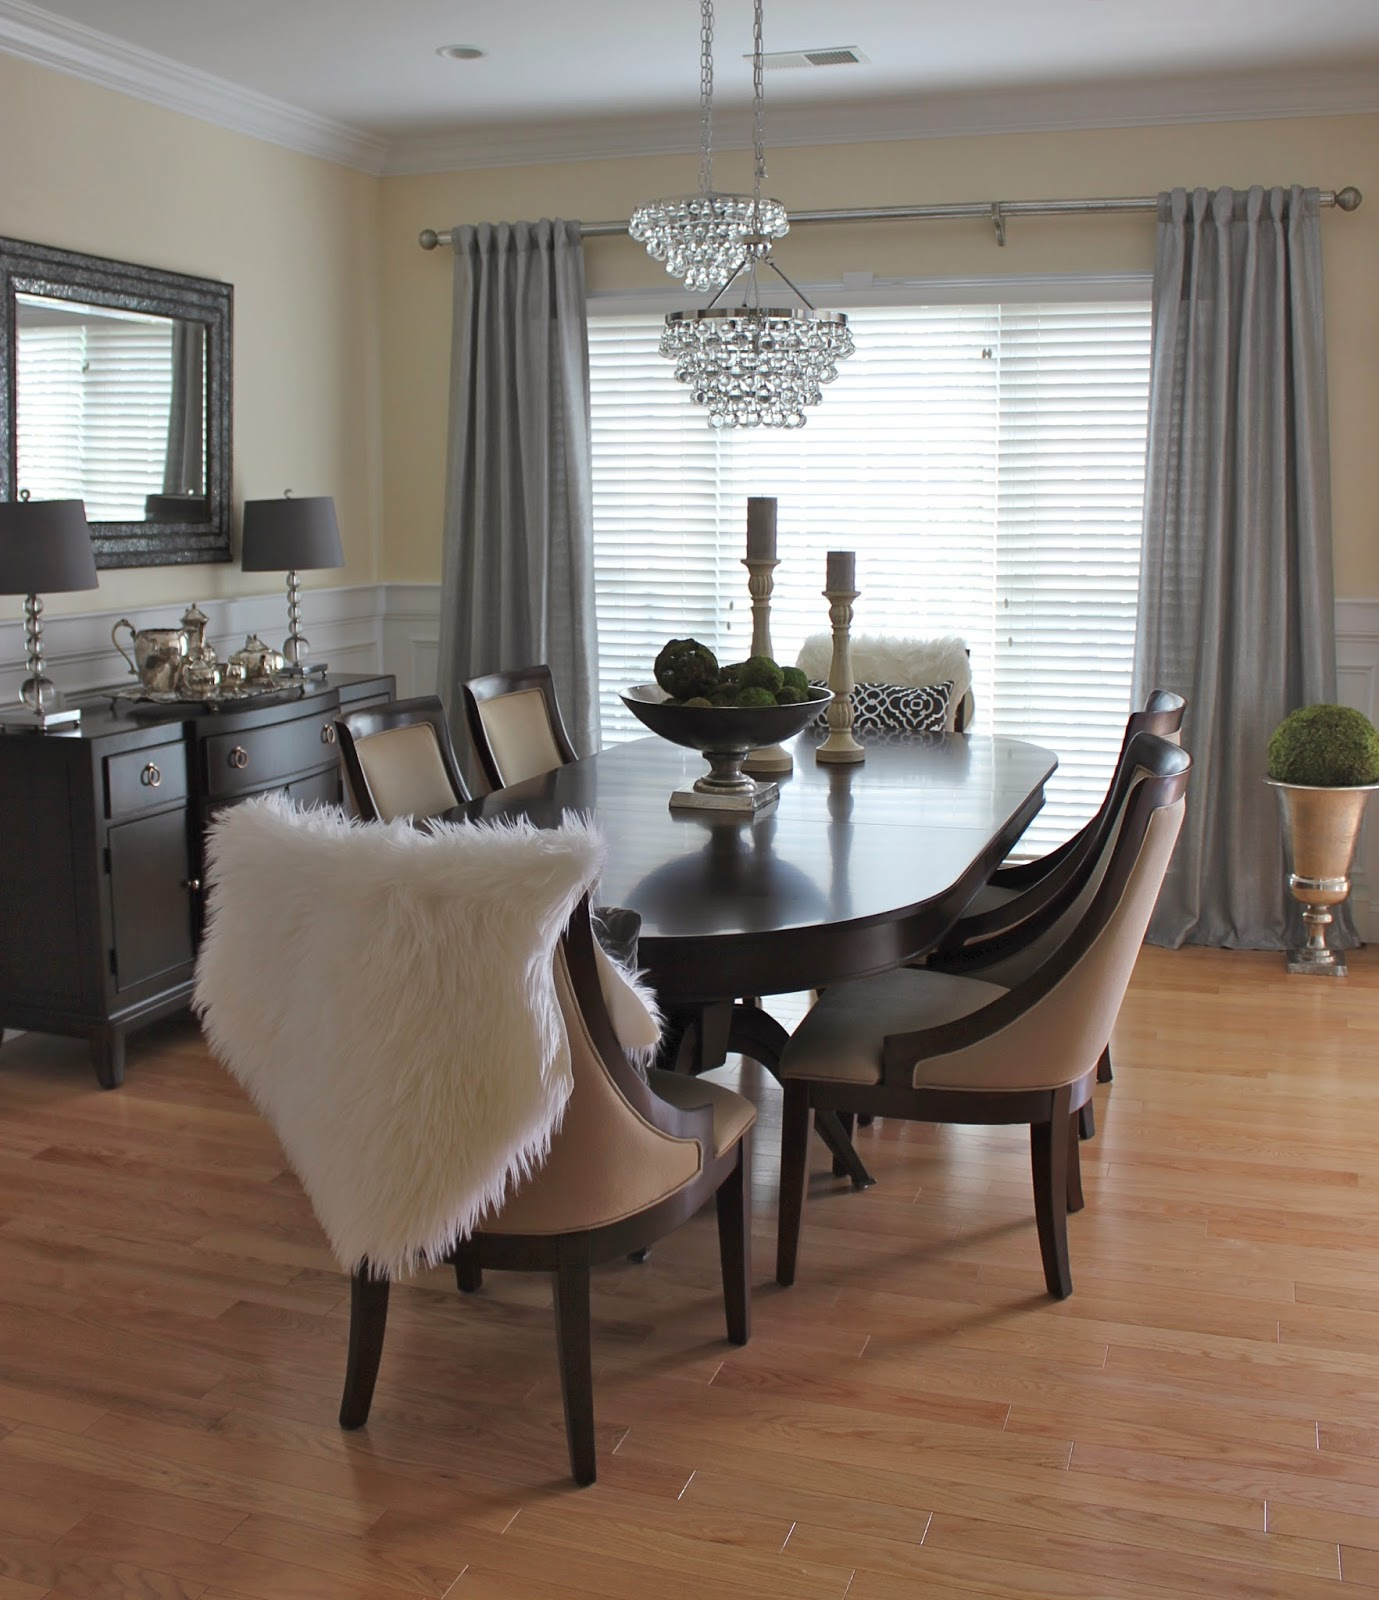 Glamorous Dining Rooms: Maison Decor: Glamorous Style For A Dining Room